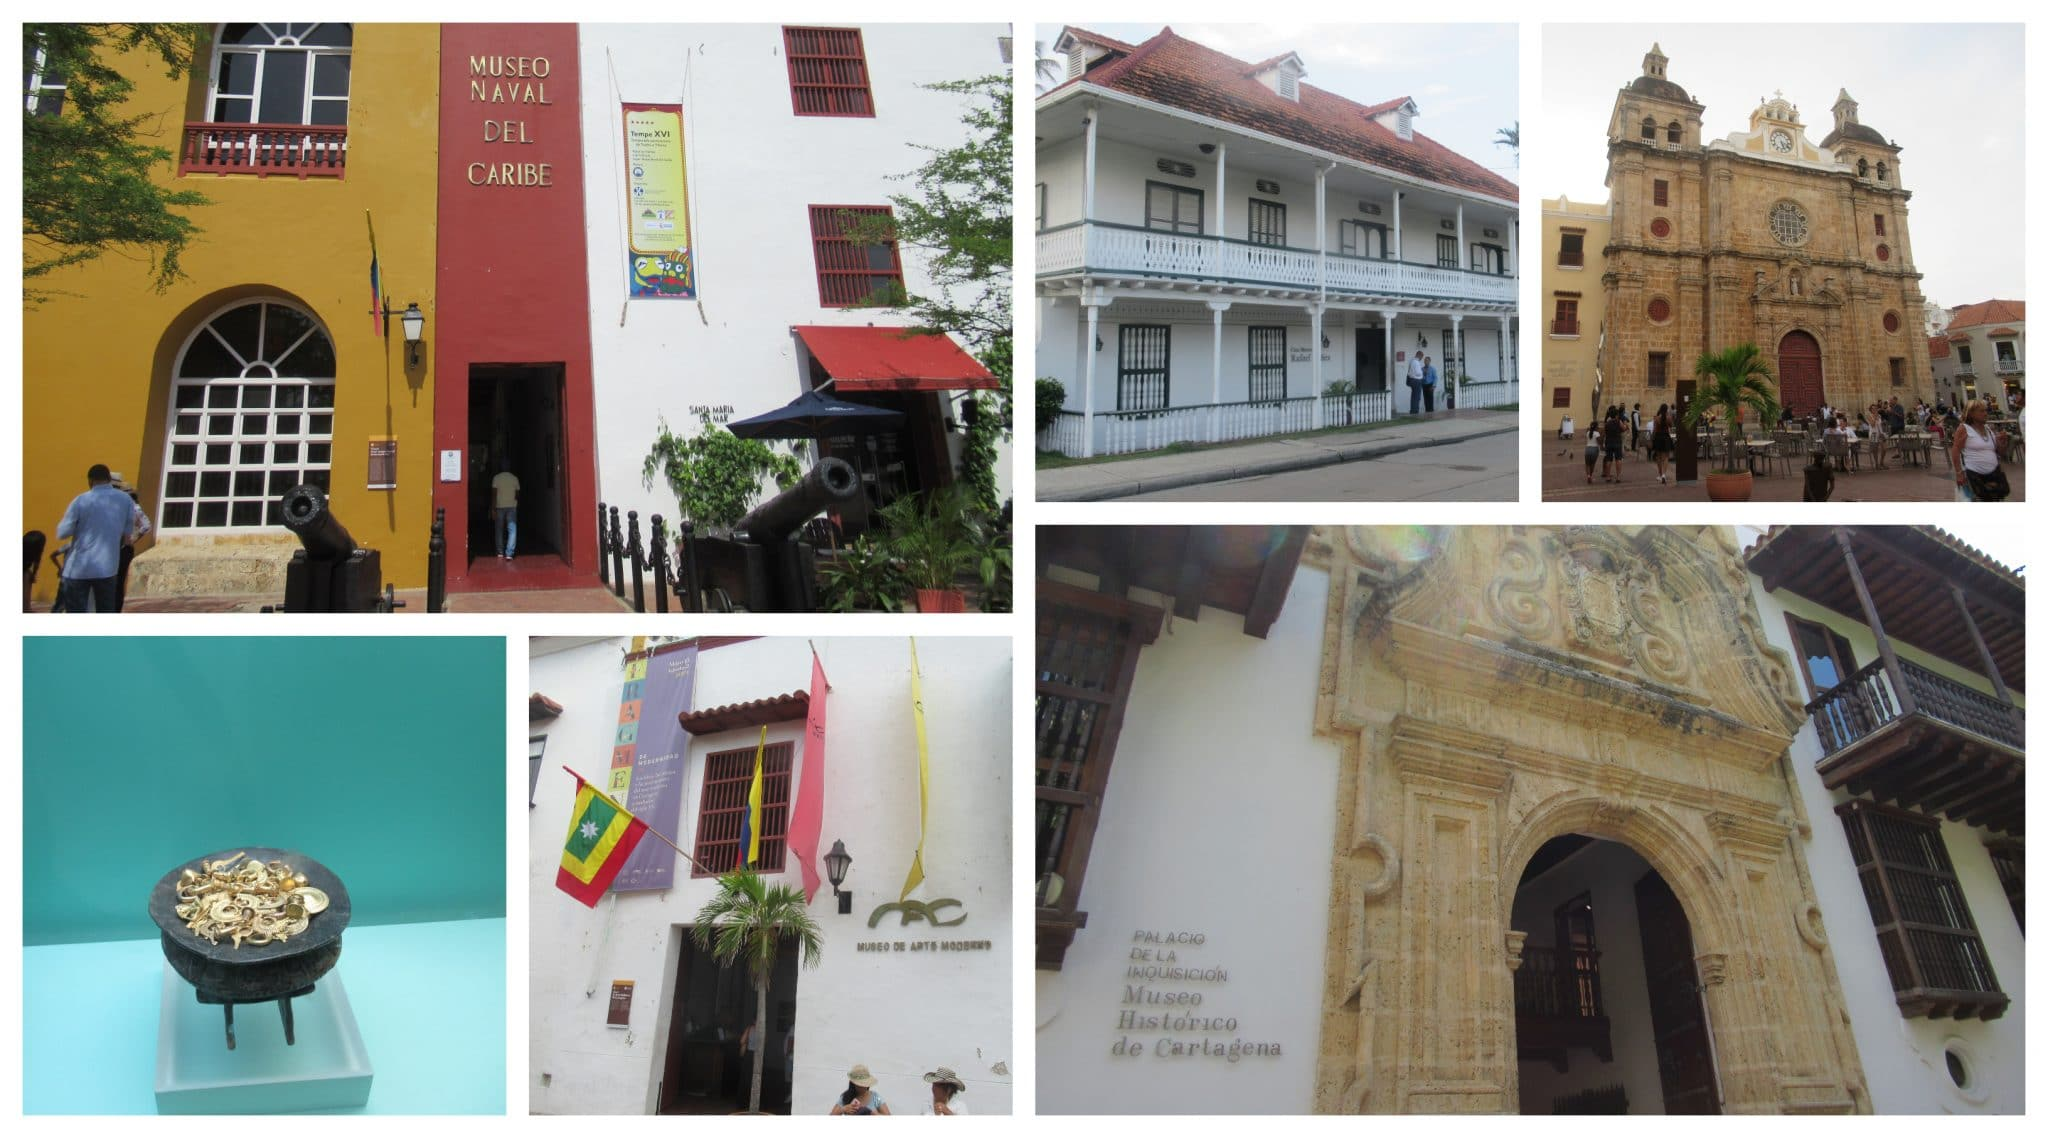 Best Museums to Visit in Cartagena, Colombia